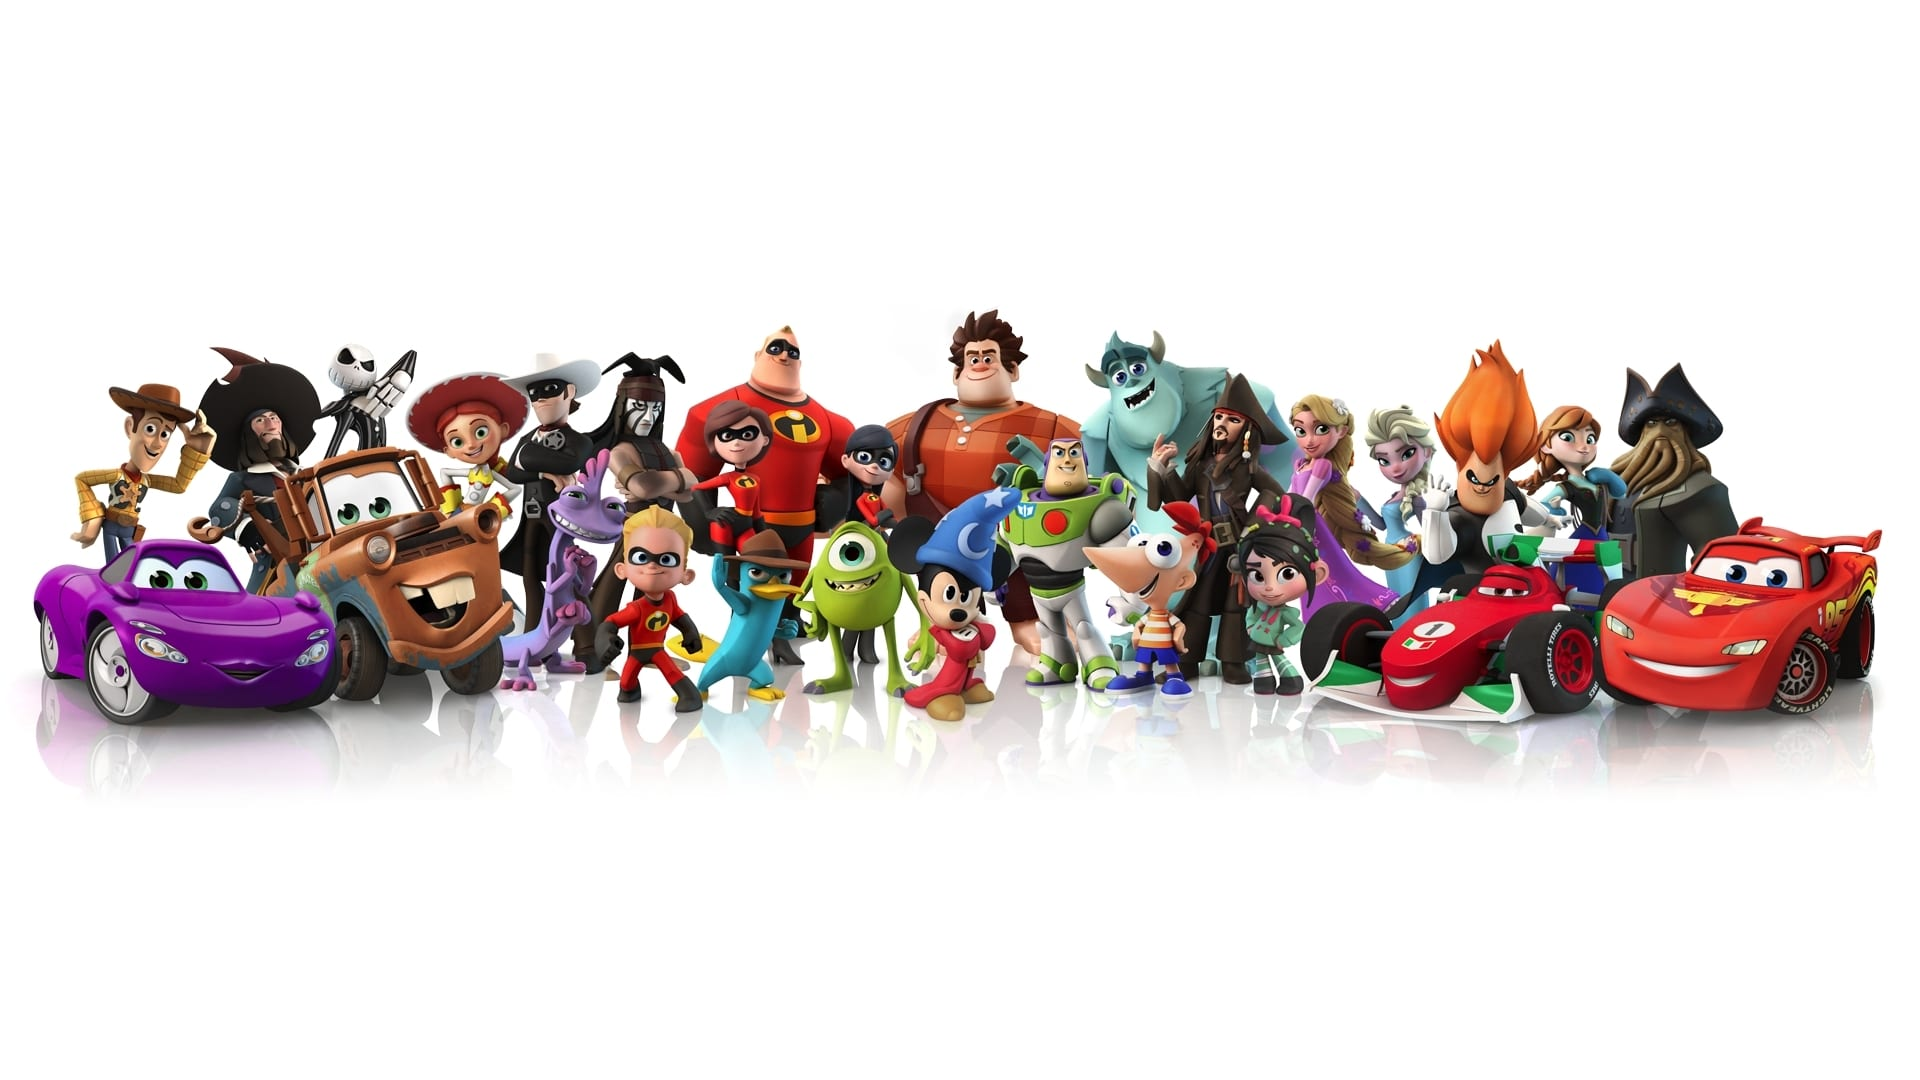 Live Event For Disney Infinity 20 On April 30th